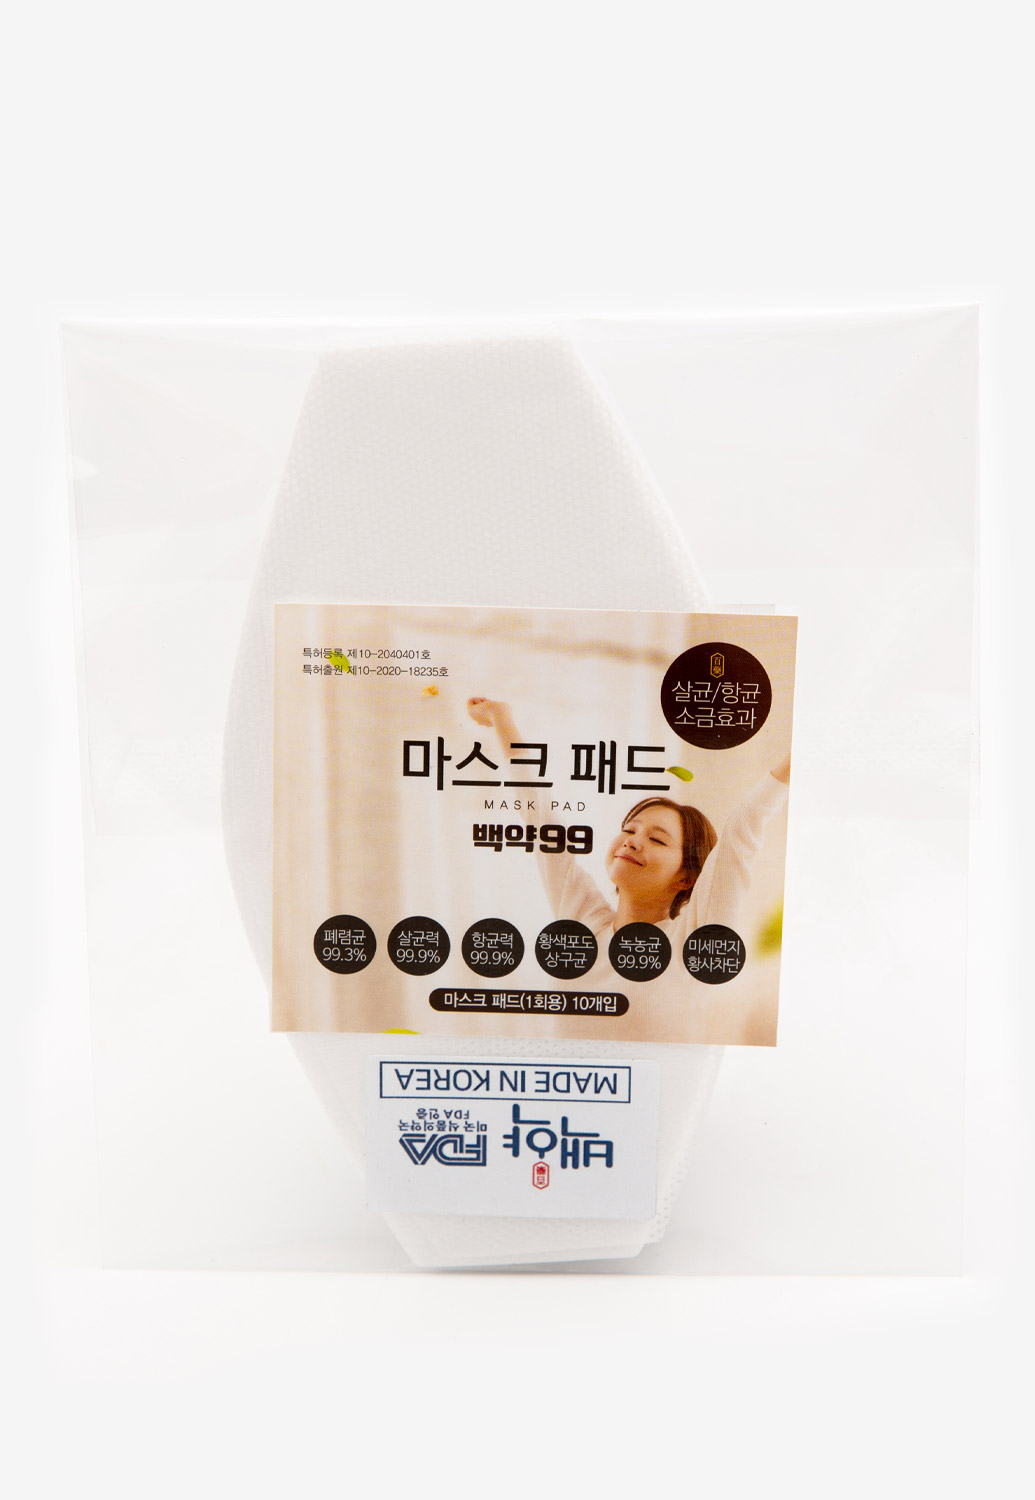 Long Mask Pad